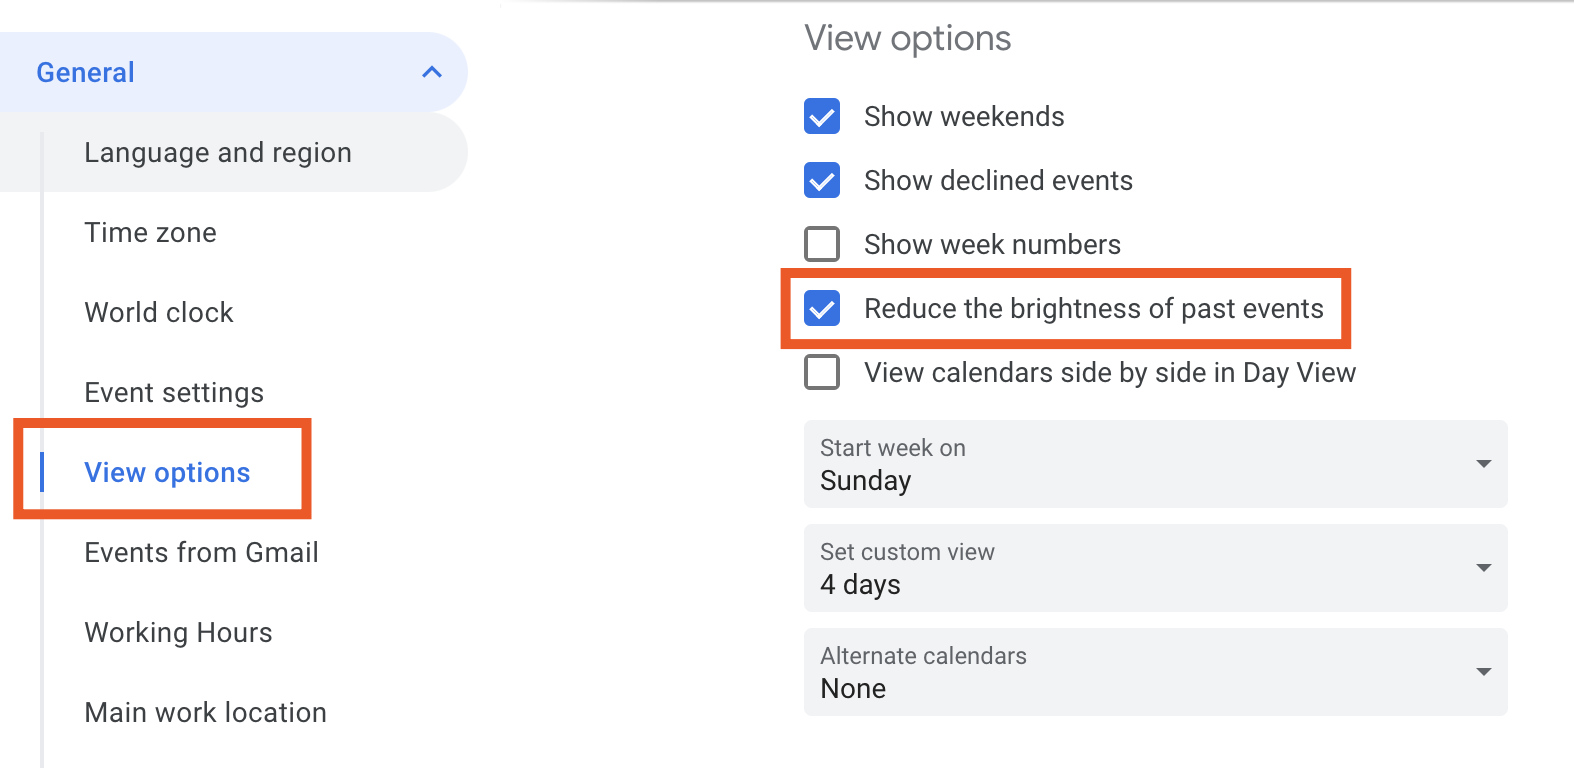 View options in Google Calendar